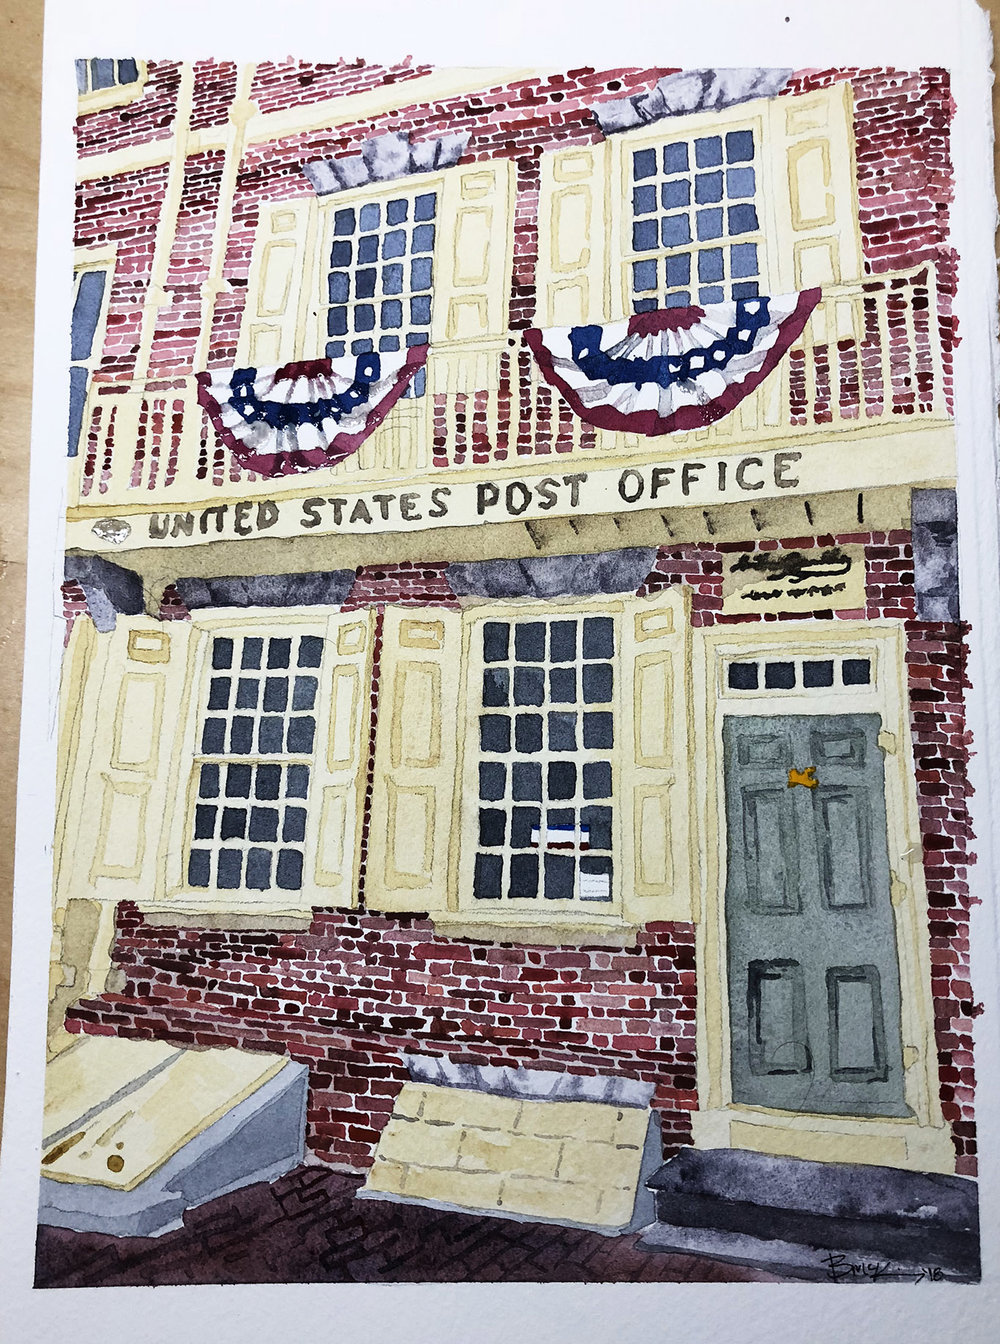 3rd and Market Post Office, Watercolor, 8x12 inches, 2018